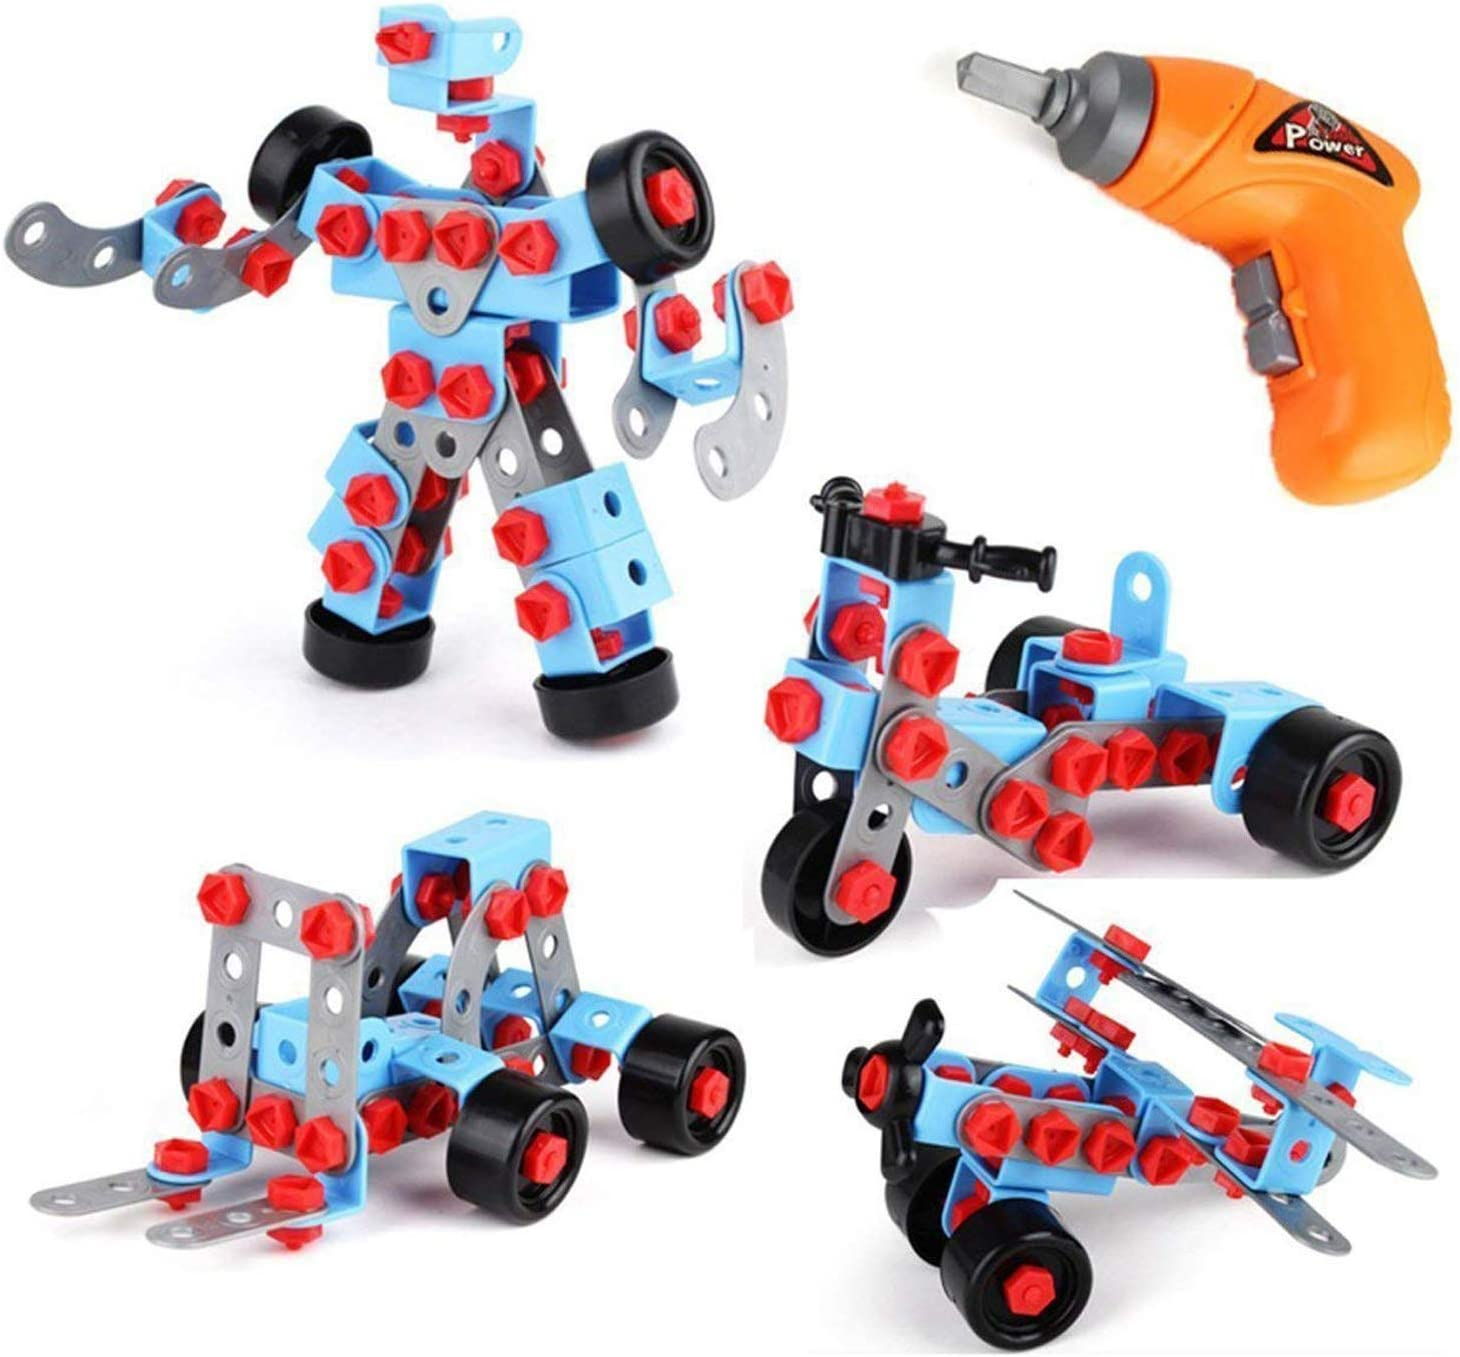 Toyvelt Take Apart Stem Learning Kids Toys - Educational Building Blocks Set (286 Pieces) With Electric Drill Toy - Great Gift for Boys and Girls Ages 3 4 5 6 - 12 years old